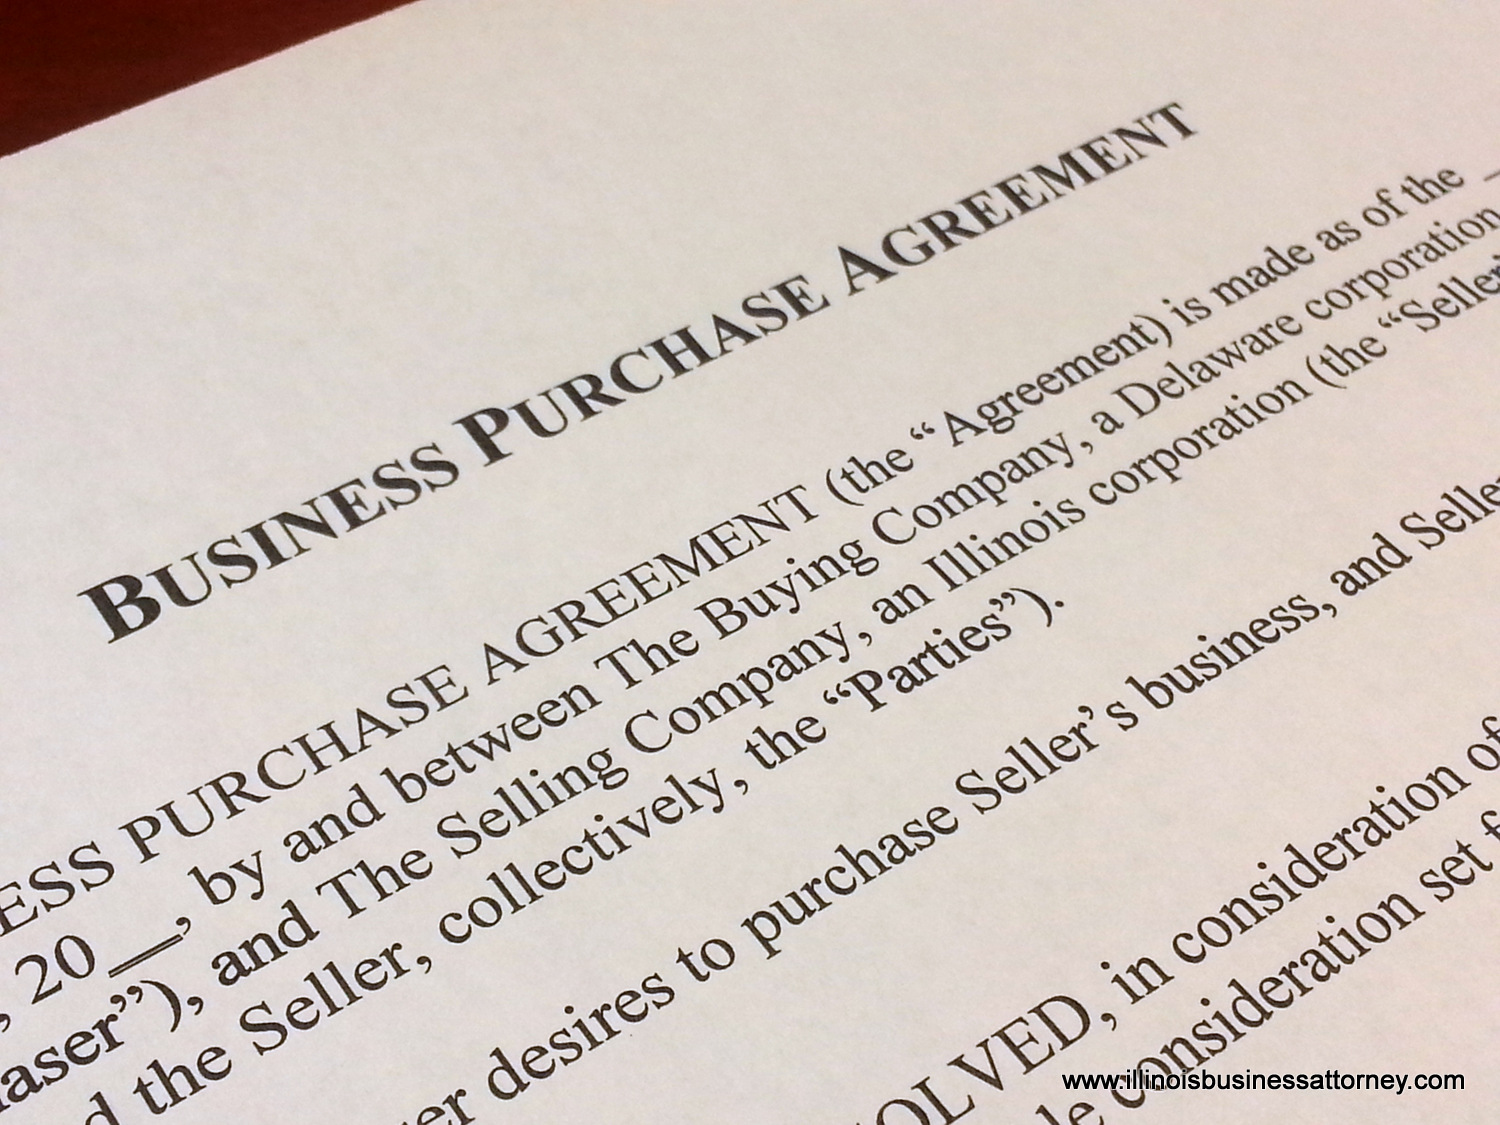 business acquisition agreement illinois business attorney